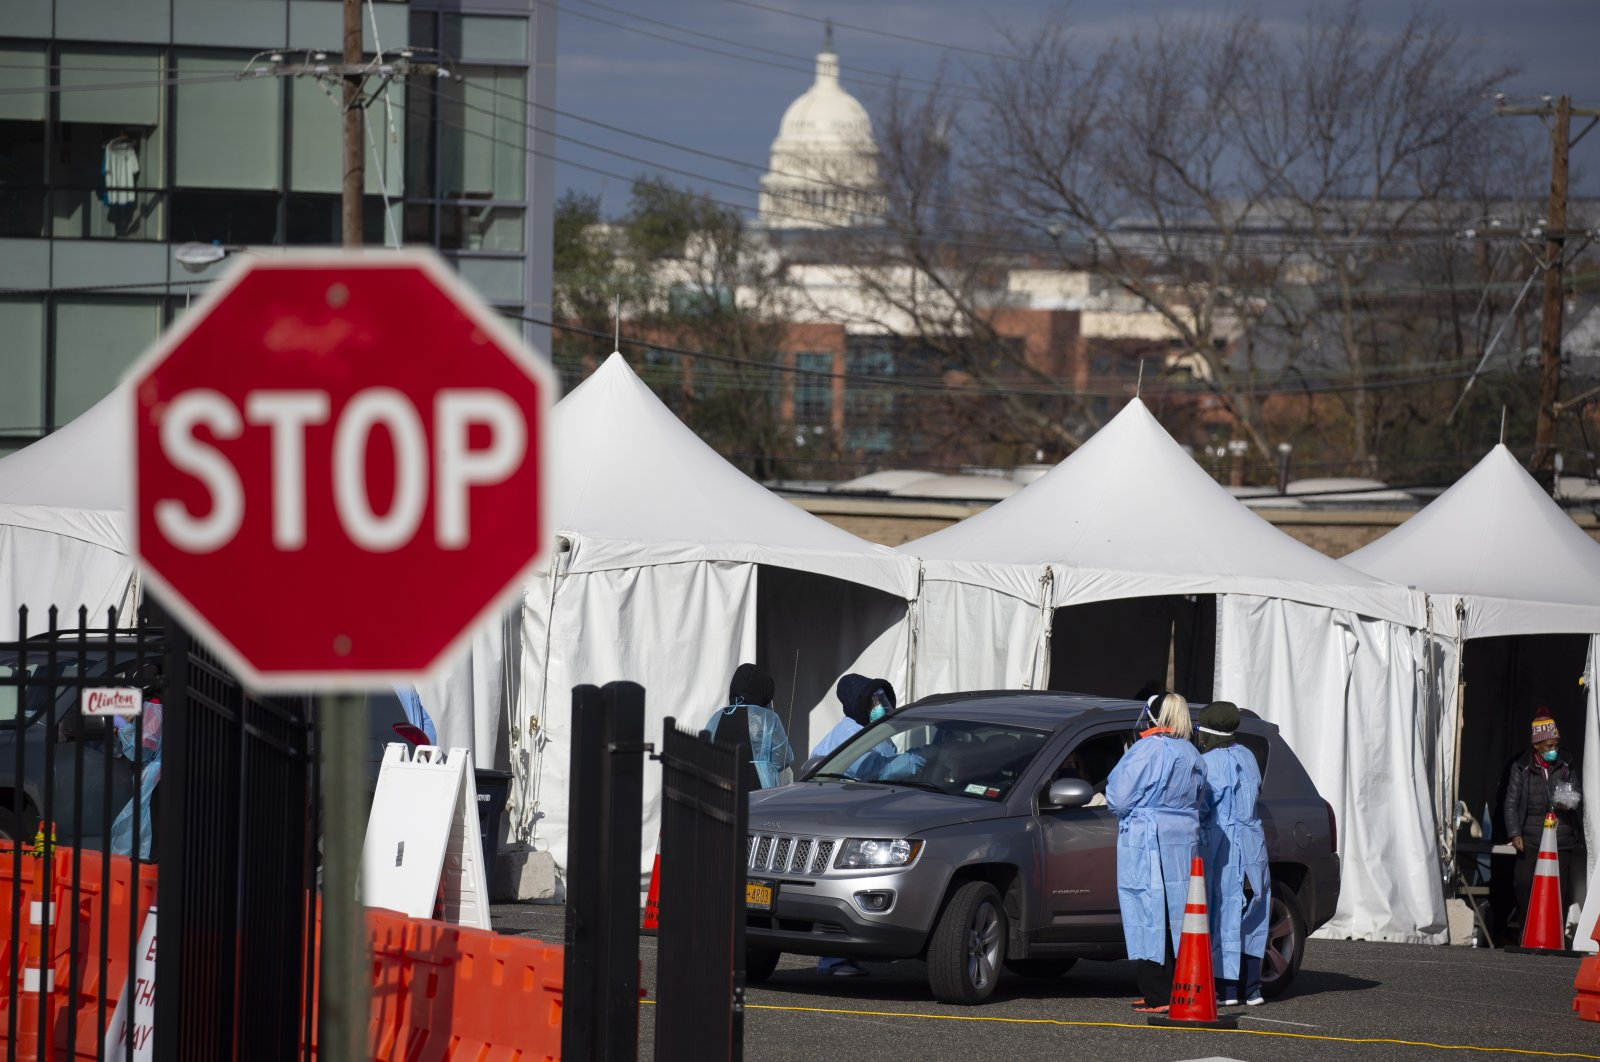 People in vehicles are tested with a swab at a drive-thru COVID-19 testing site operated by the District of Columbia, with the U.S. Capitol seen in the background, in Washington, the U.S., Nov. 18, 2020. (EPA Photo)